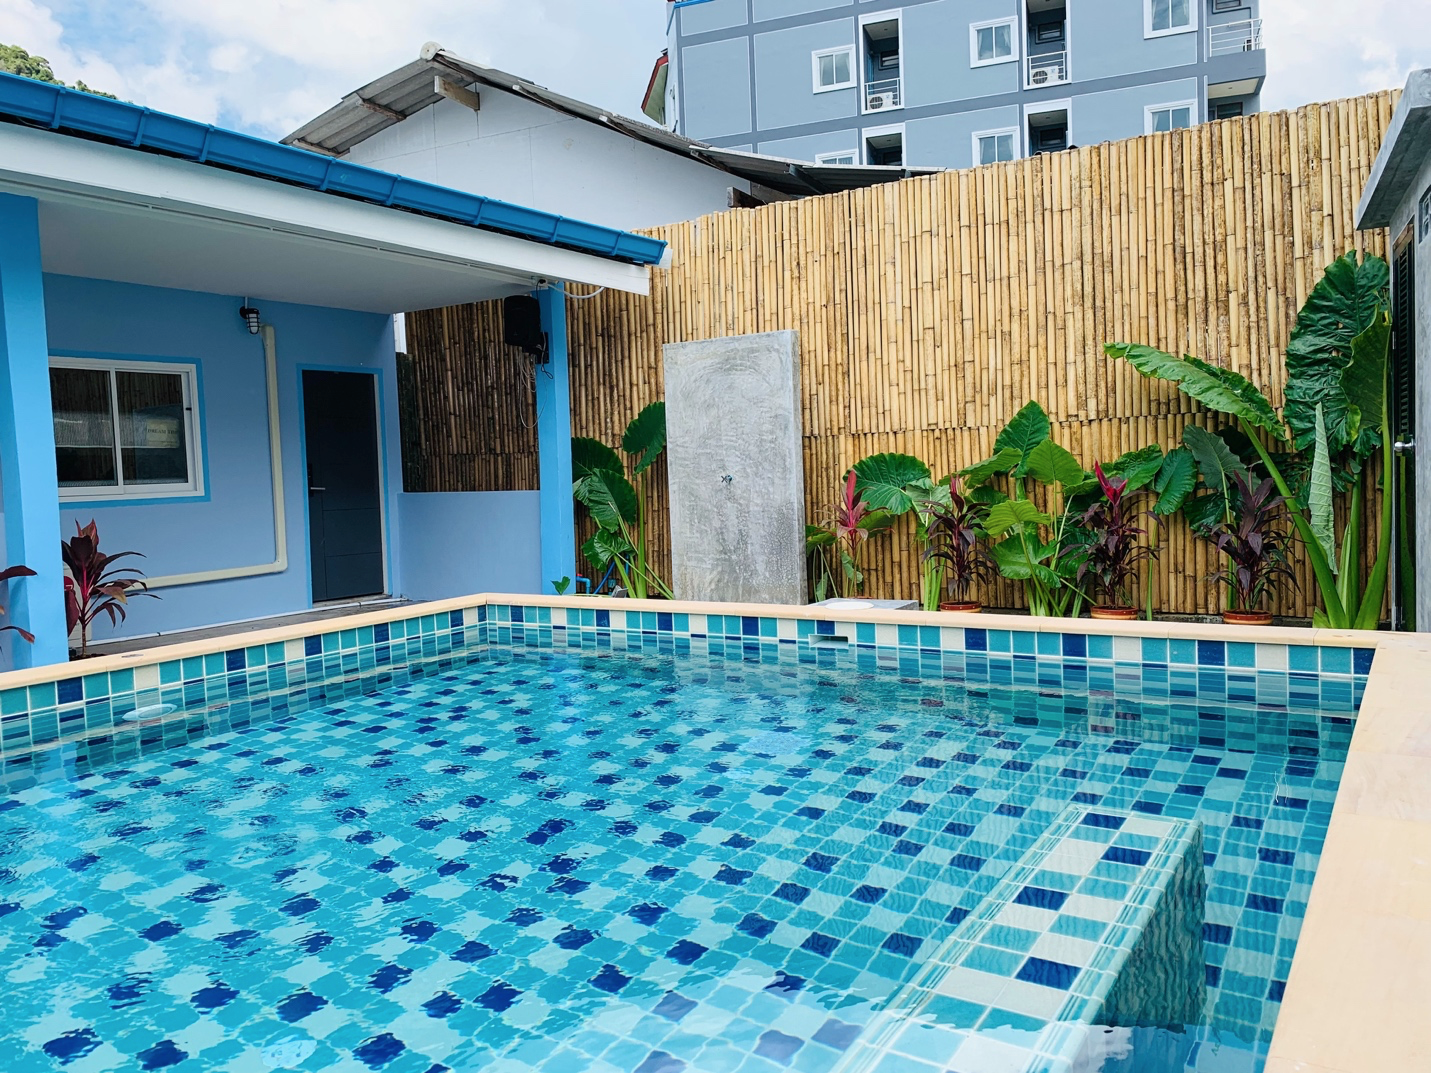 Pool Chlorine Guide: All You Need to Know